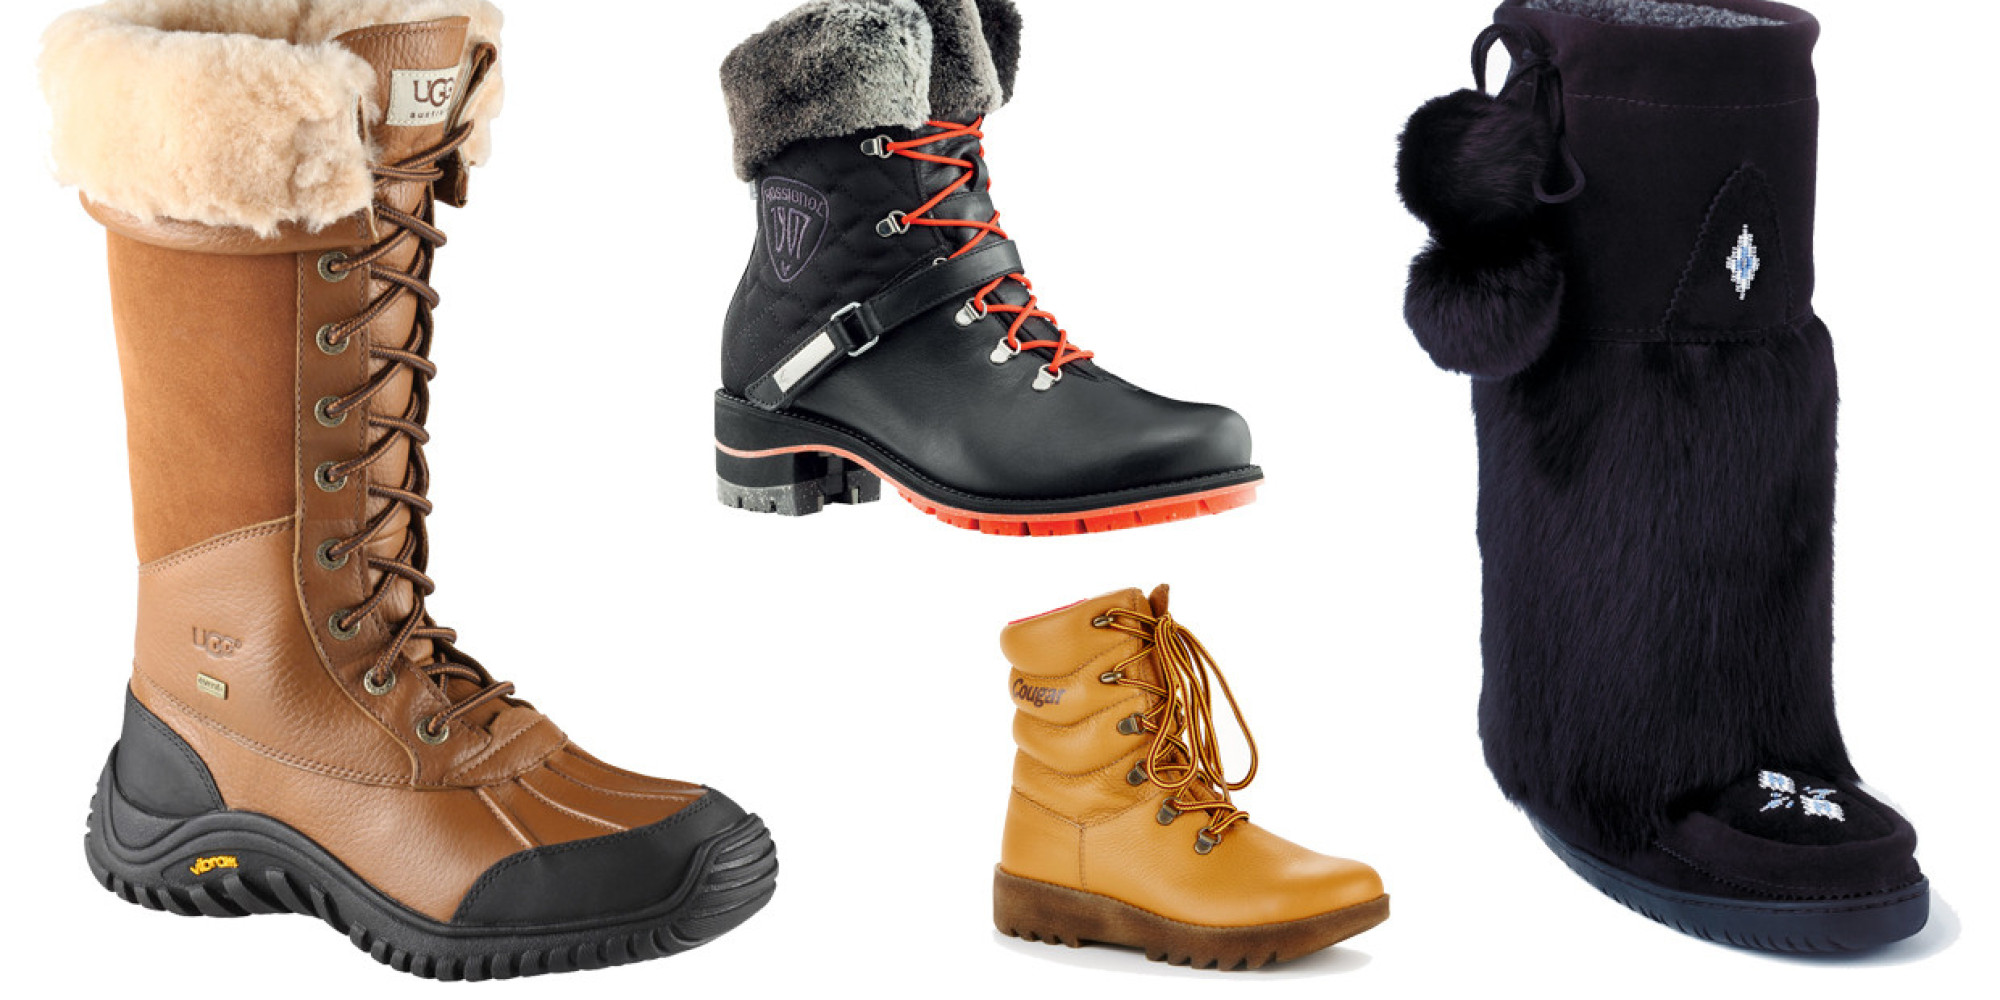 Coach Winter Boots Canada | Santa Barbara Institute for ...